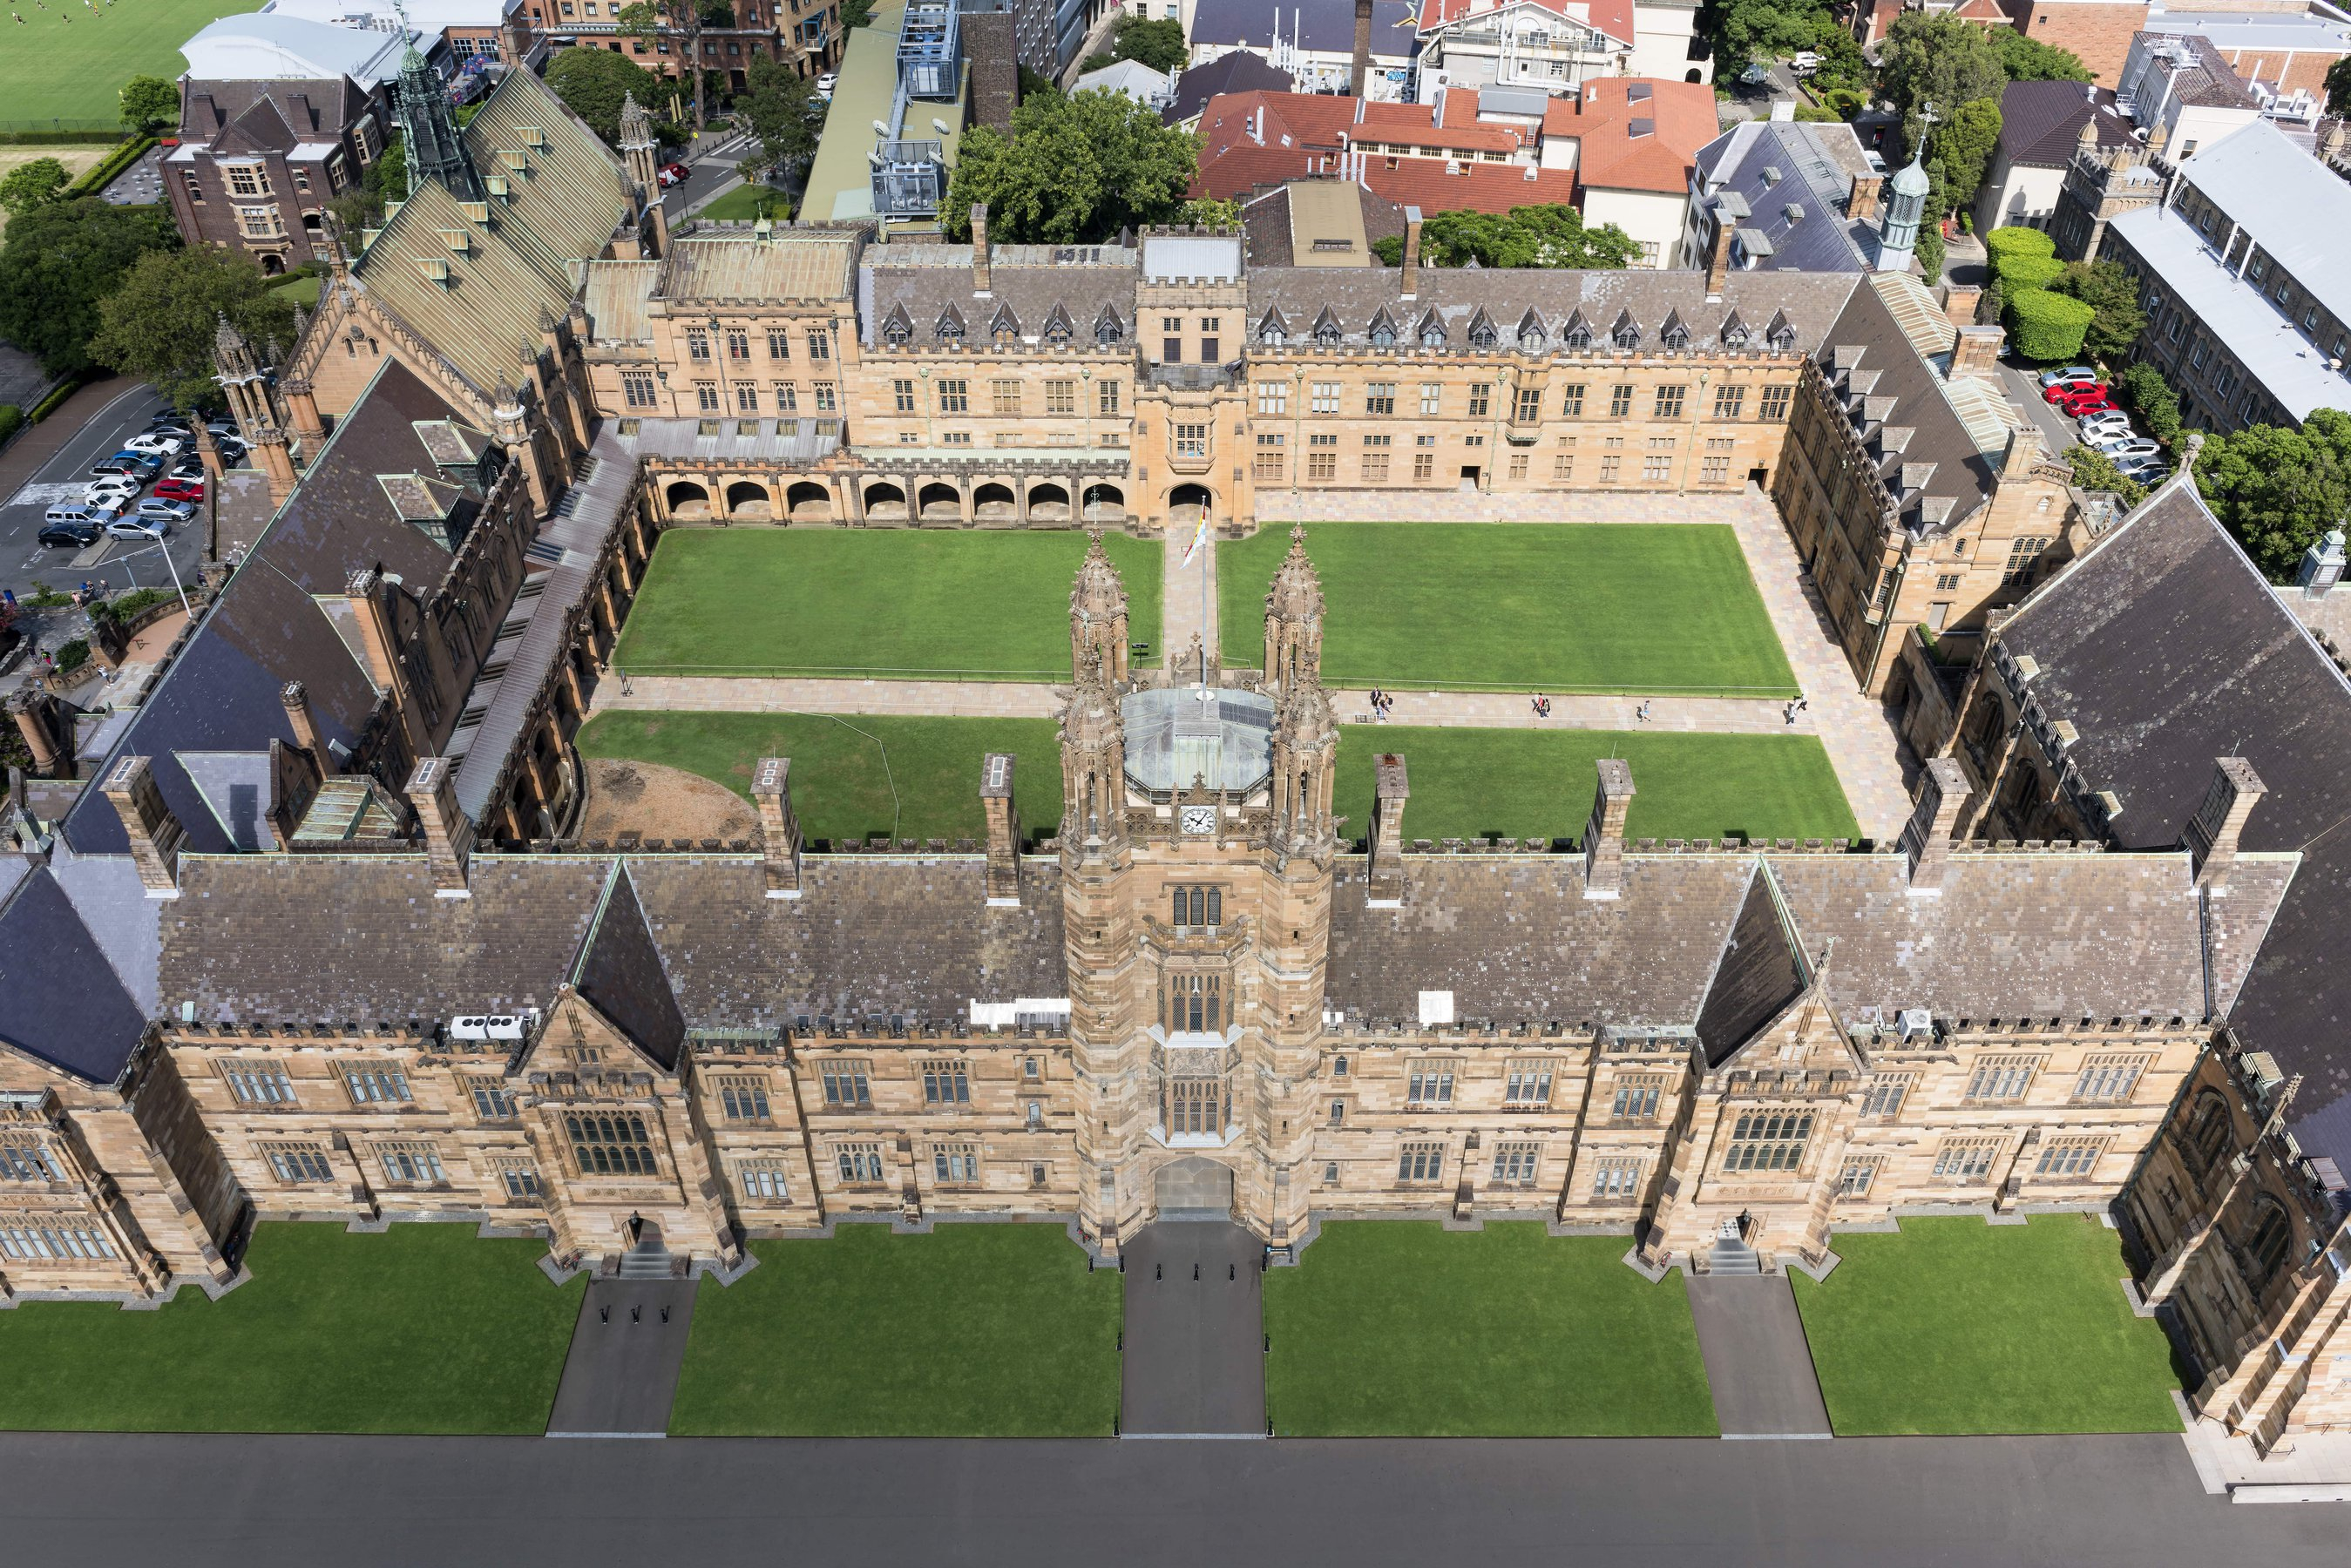 Aerial view of the University of Sydney quad